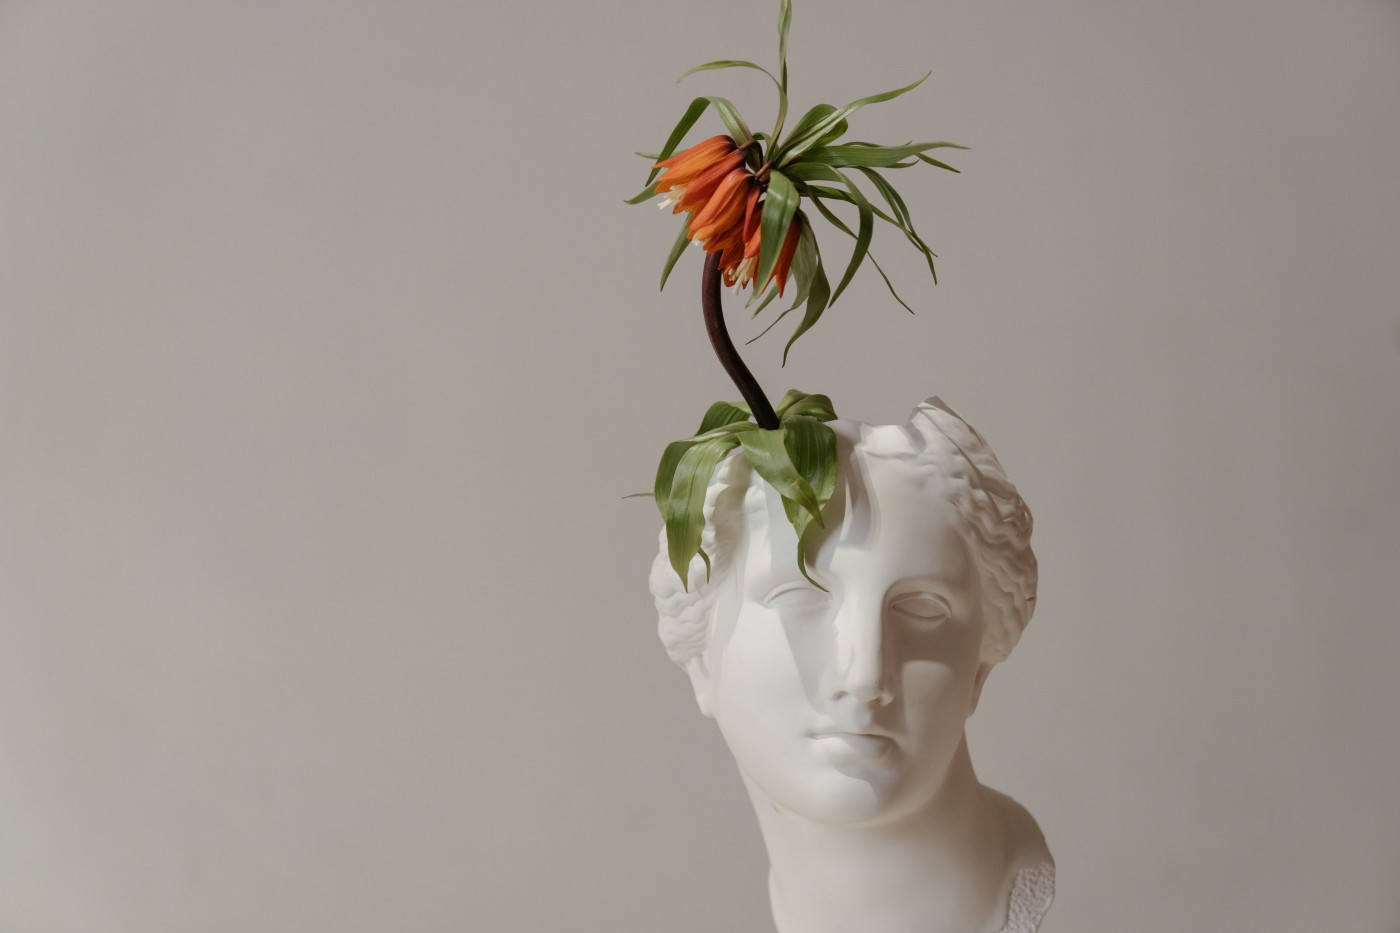 White ceramic bust with an orange flower emerging from the top of the head